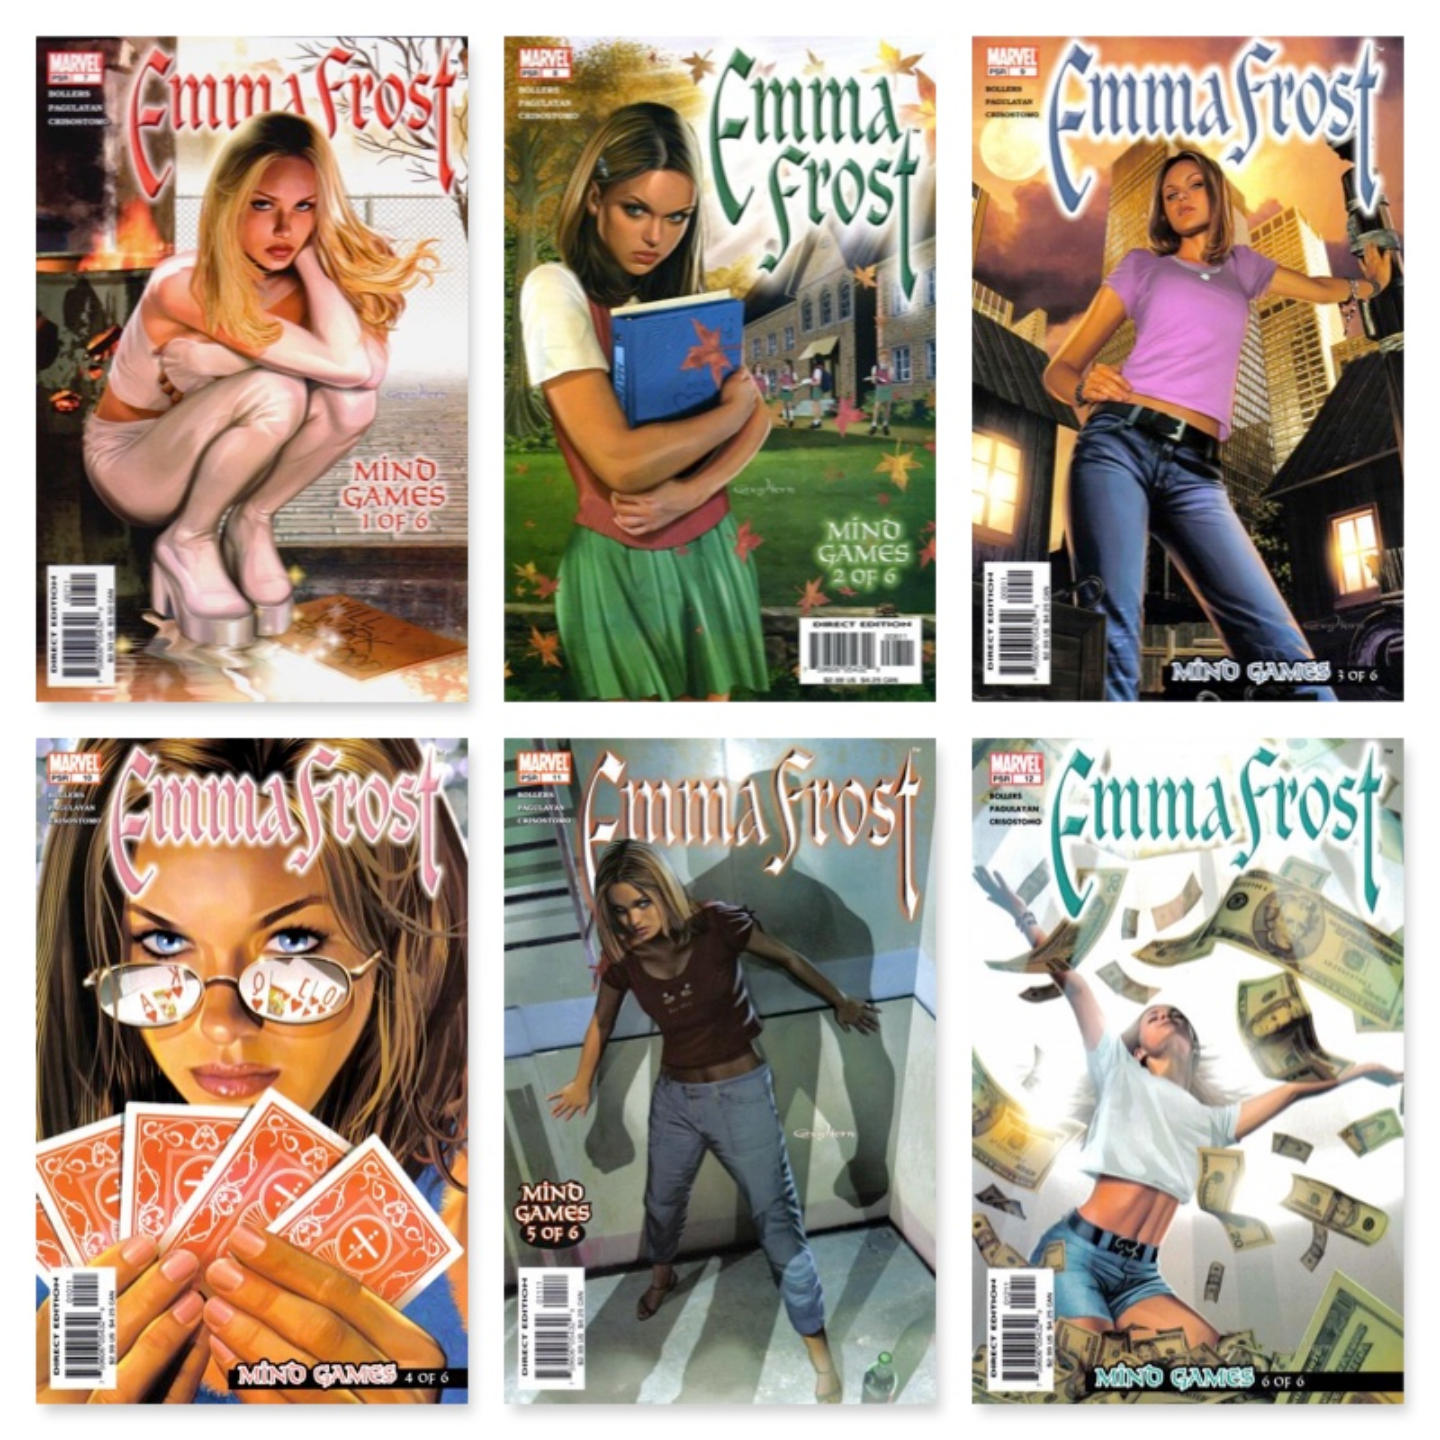 EMMA FROST #1 - #18 COMPLETE SET (KEY COLLECTION)